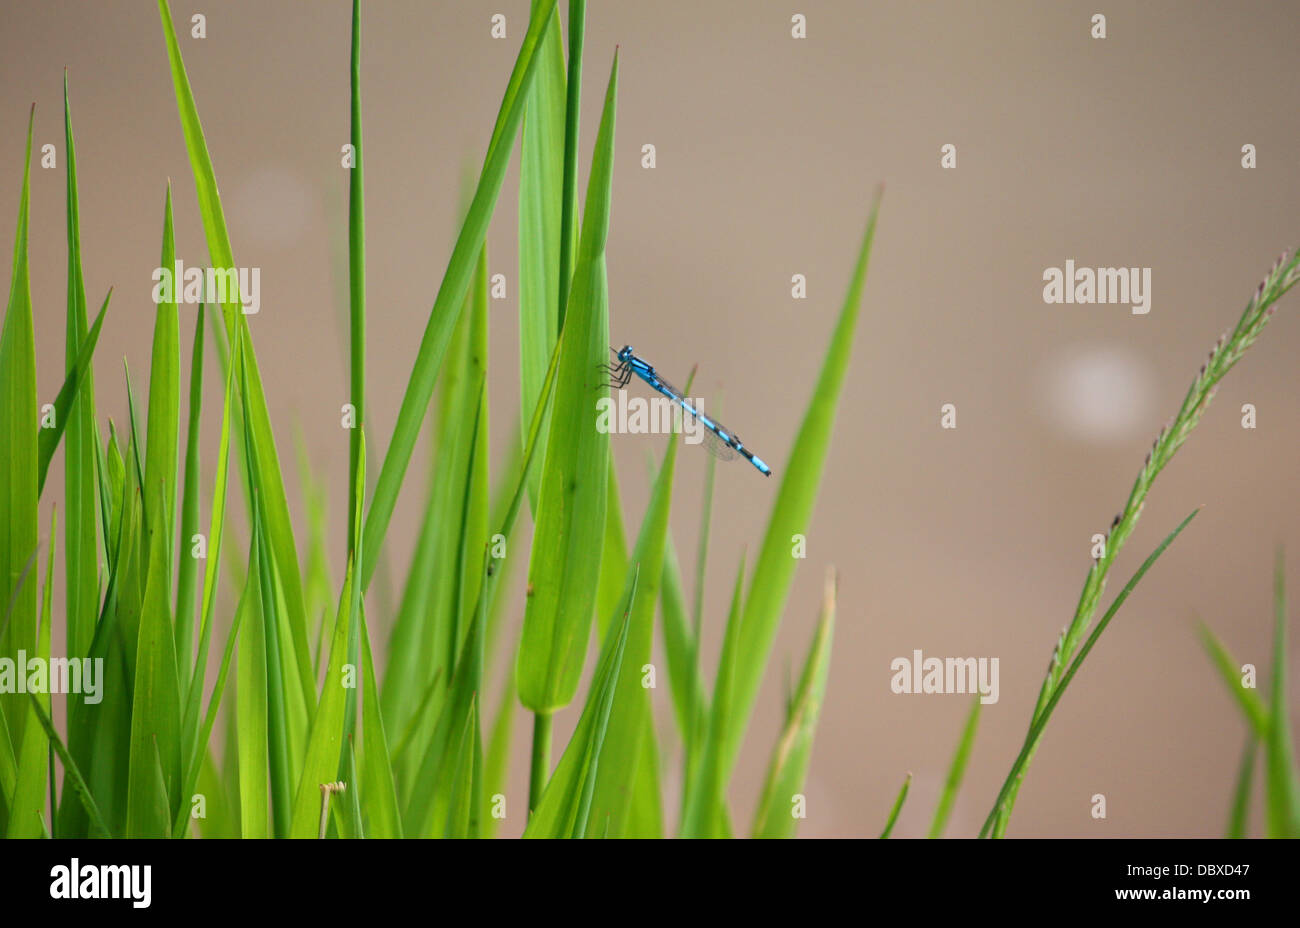 beautiul petrol green blue dragonfly on a blade of grass - Stock Image